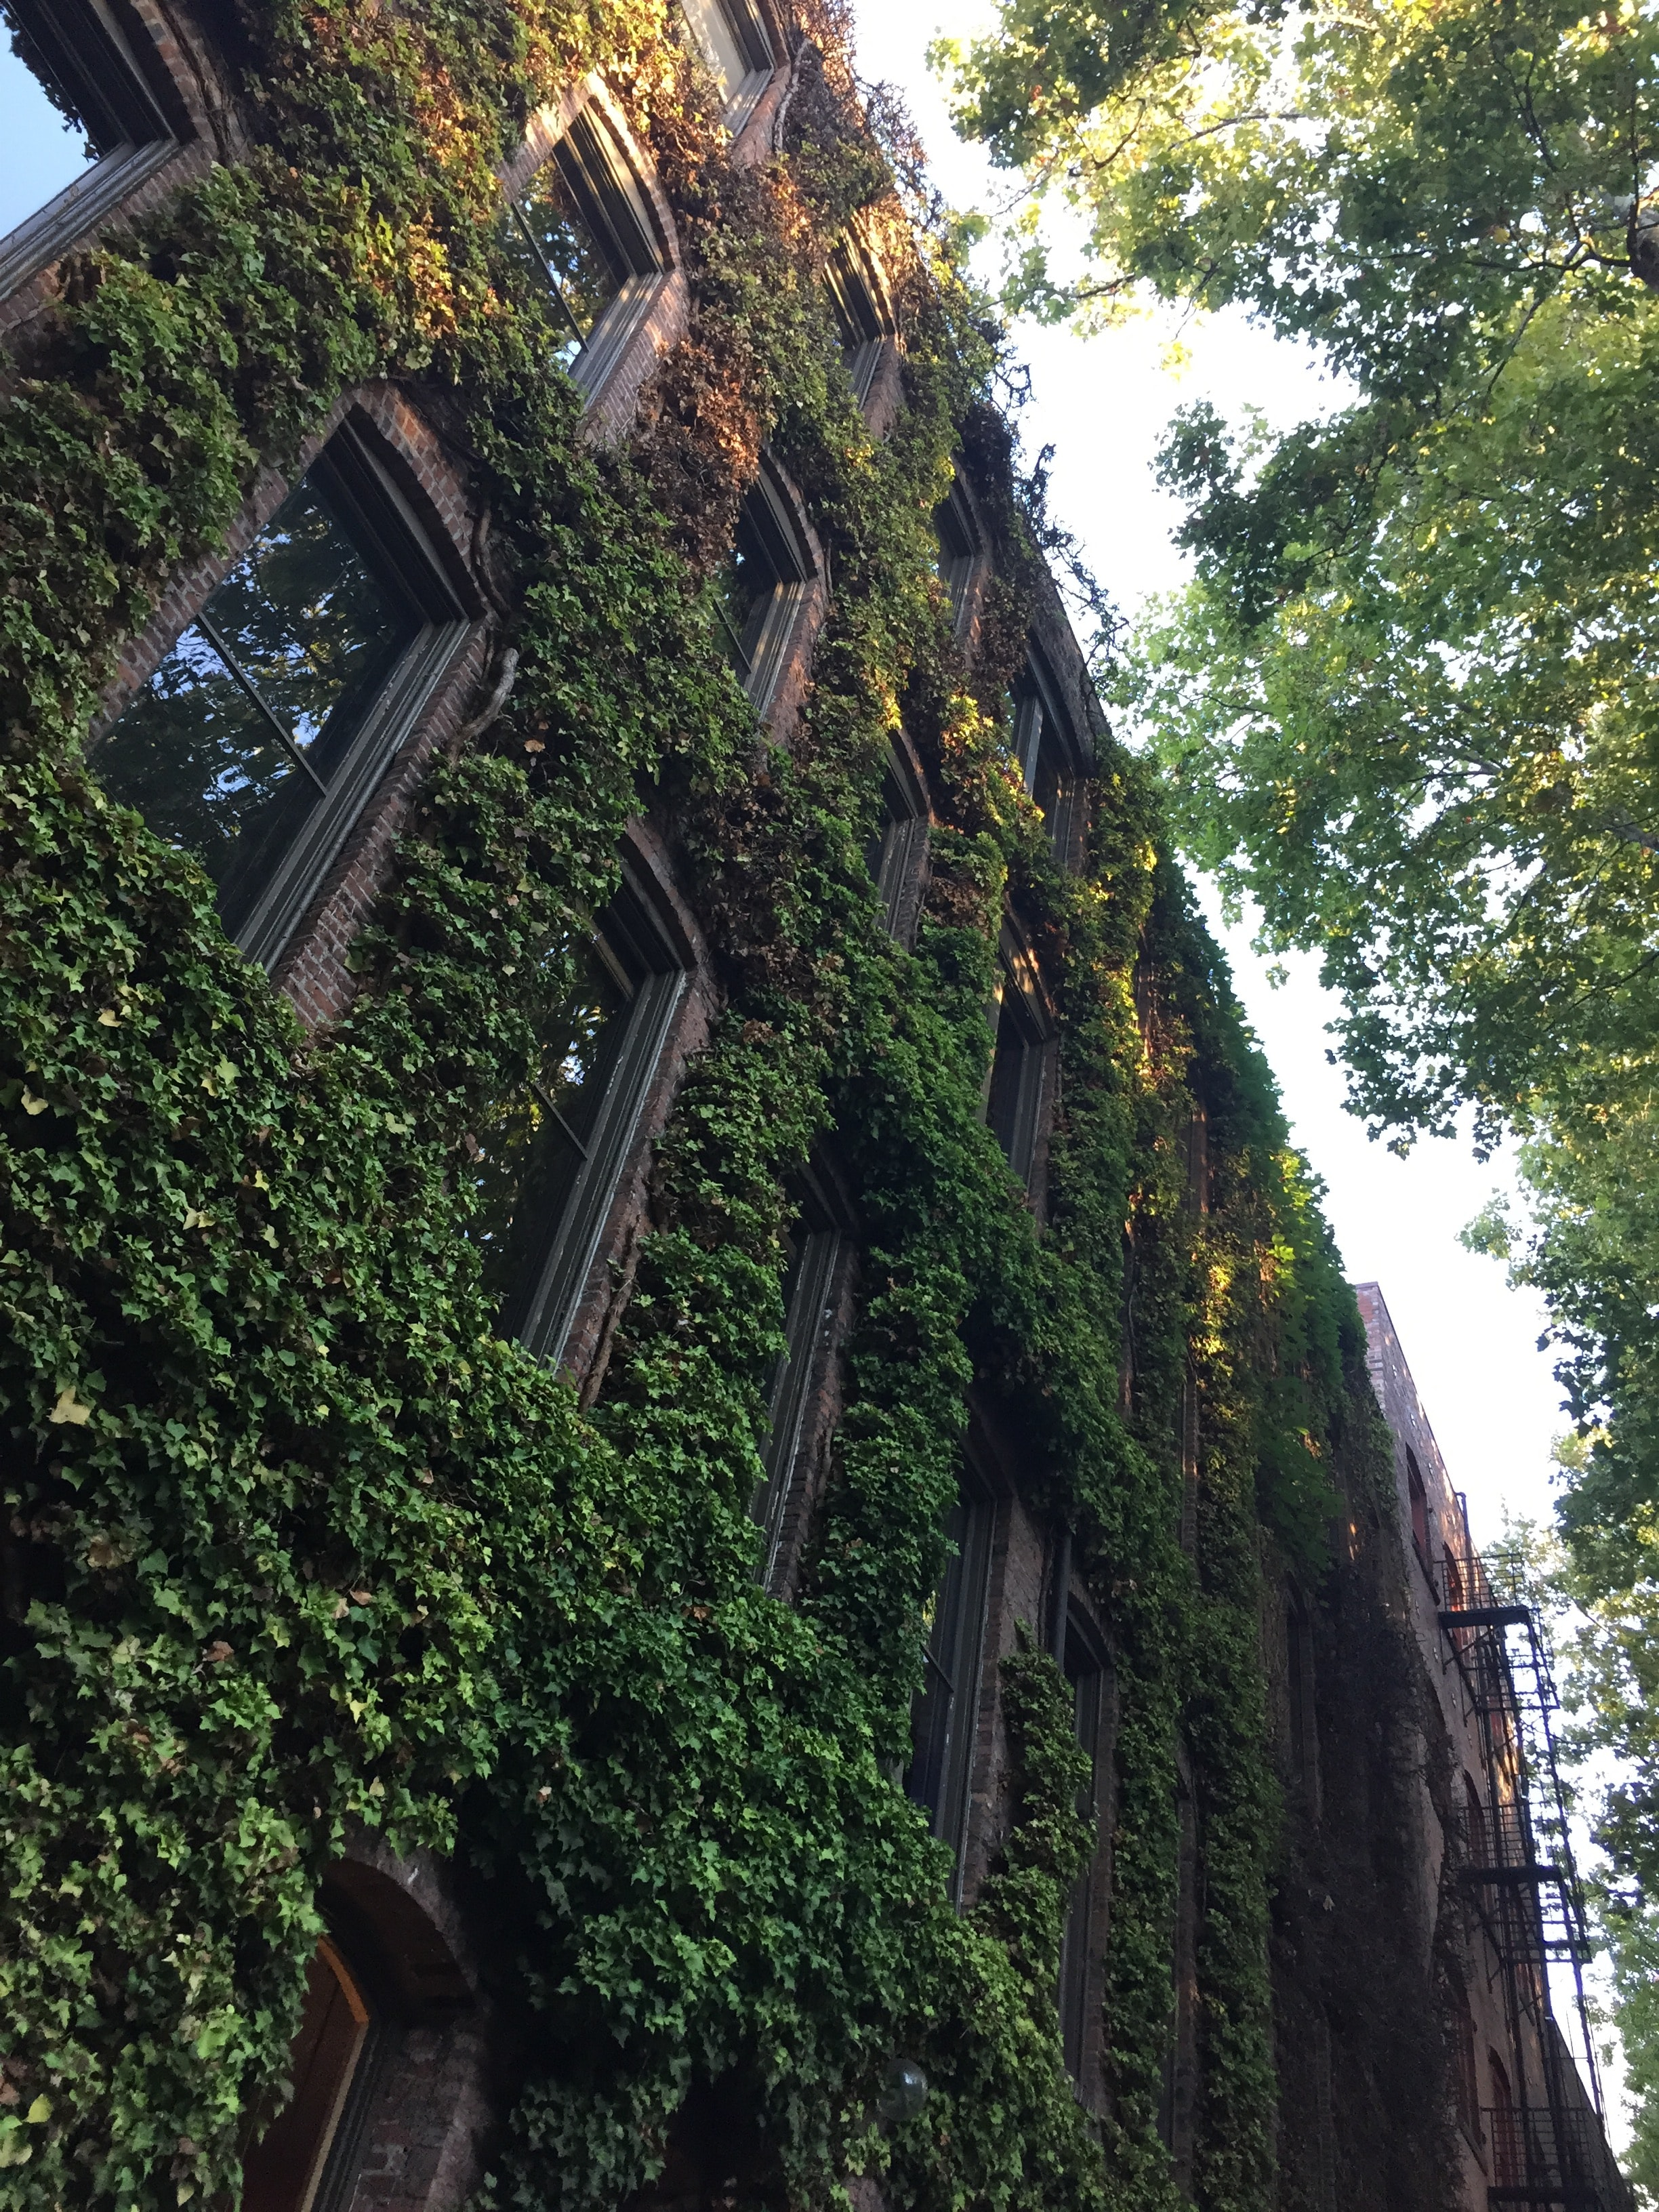 vines on brown brick building